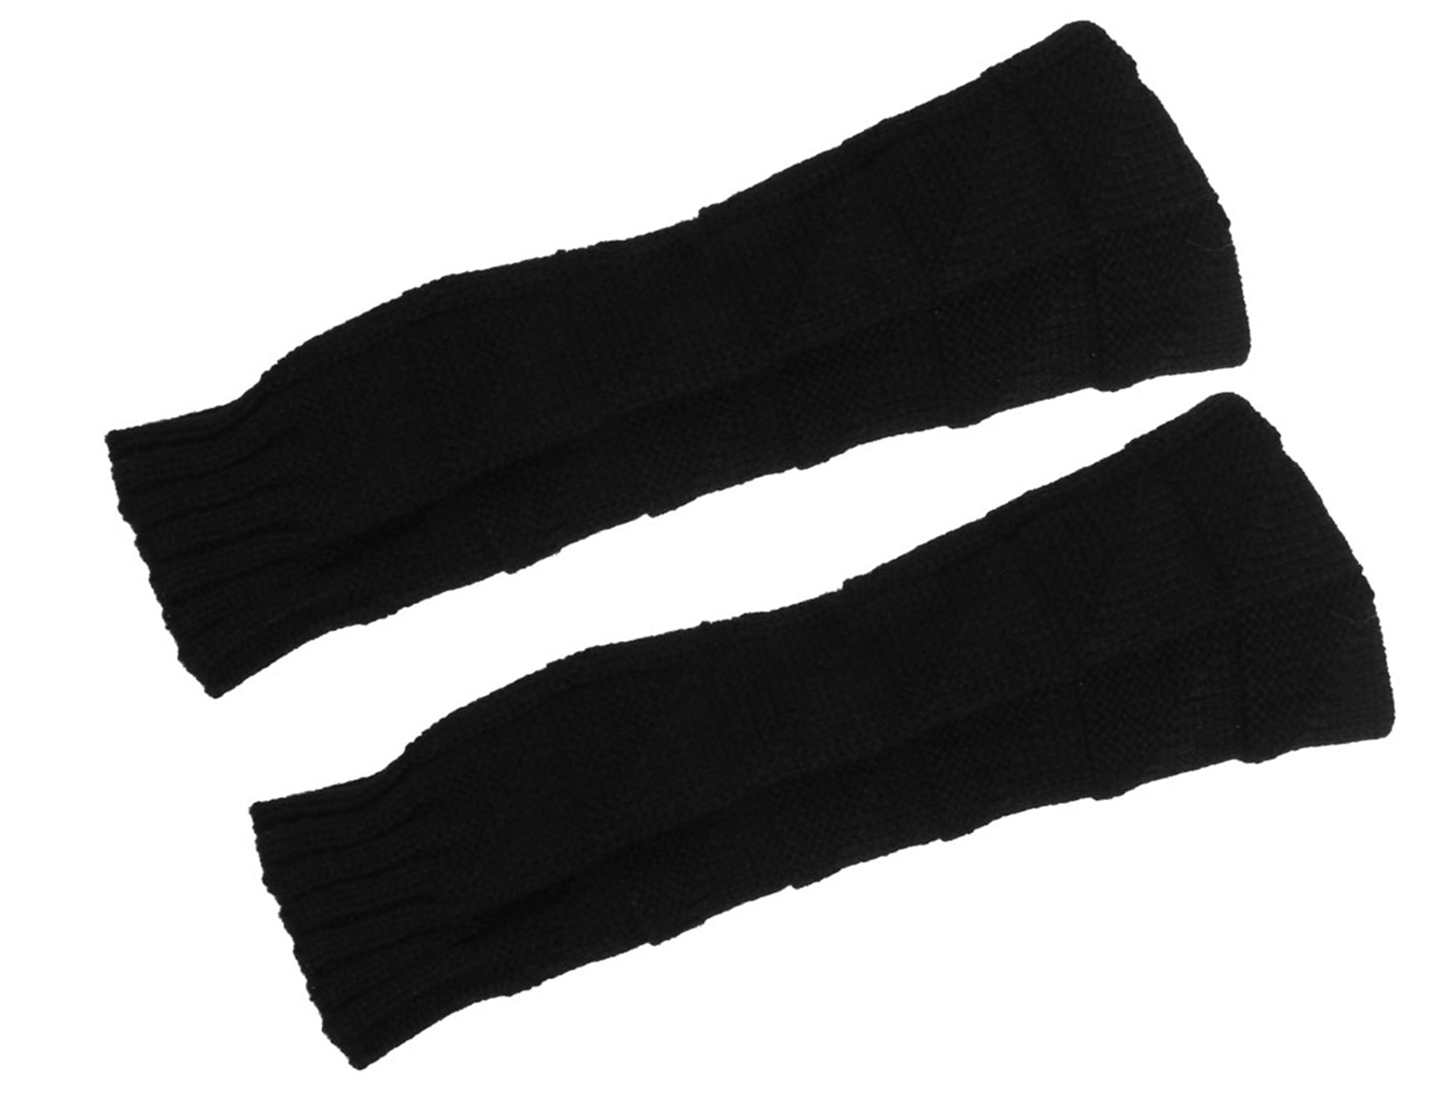 Ladies Black Knitted Ribbed Arm Warmmers Thumbhole Long Fingerless Gloves Pair